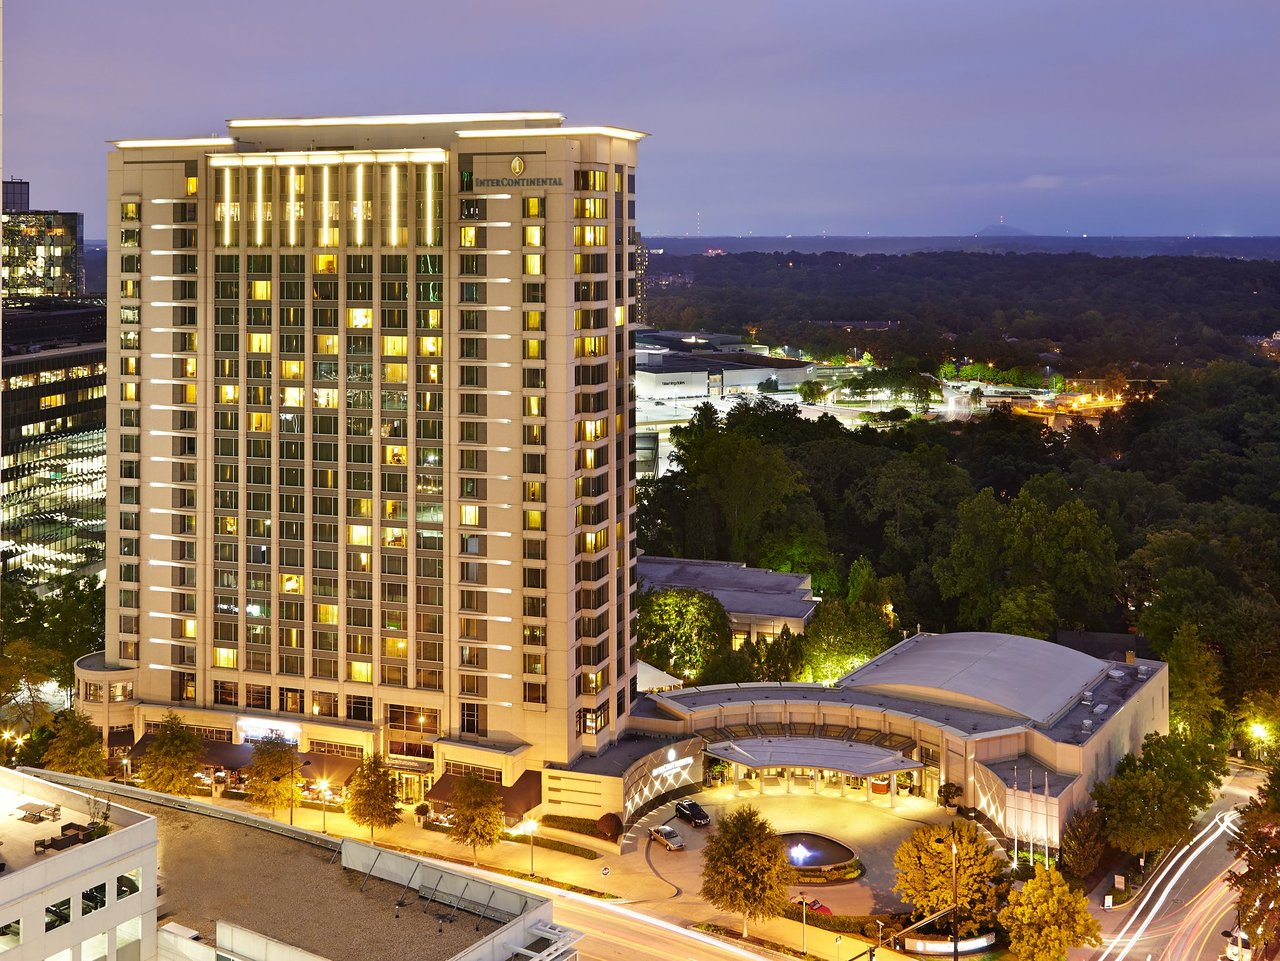 IntercontinentalBuckhead - The convention will be hosted in the center of Atlanta at the Intercontinental Hotel of Buckhead. Use the link below to receive discounted rates as an attendee of the 41st NAAMA convention.